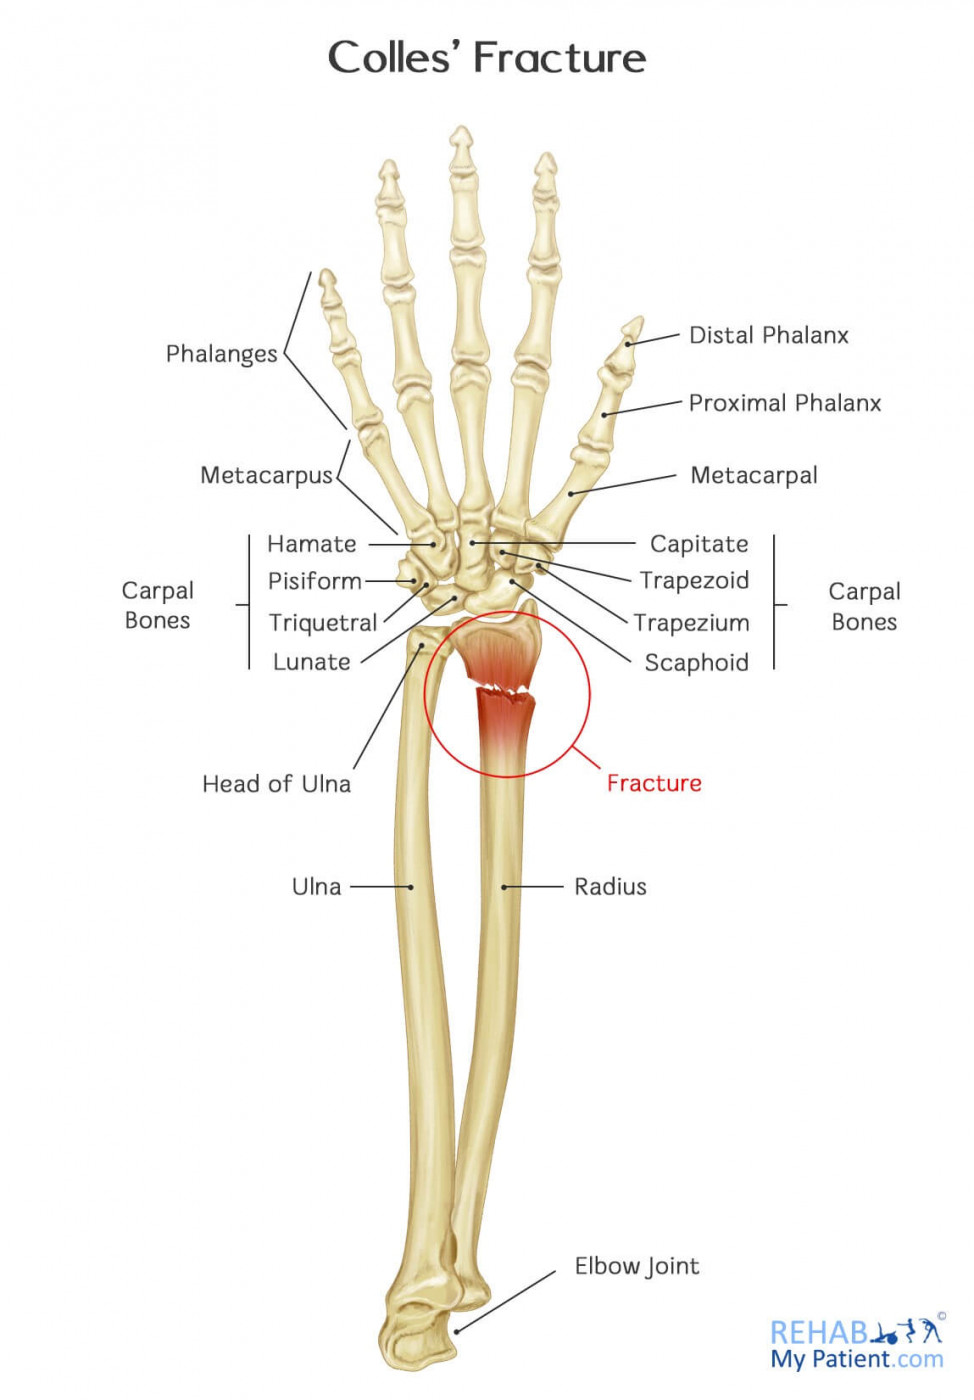 Colles' Fracture - Pictures, Treatment, Healing Time, Surgery, Symptoms